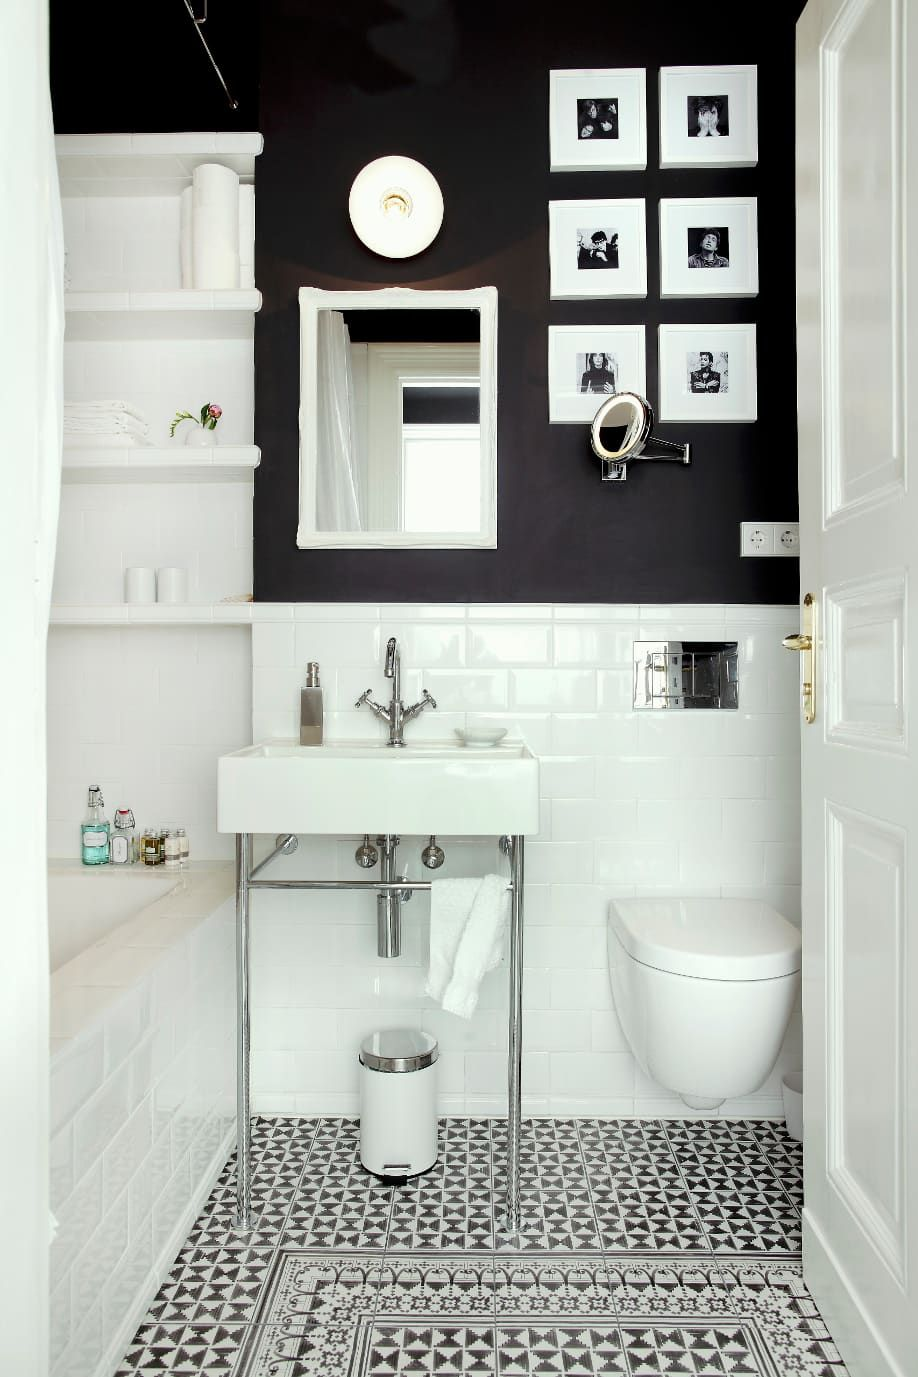 tipps f r kleine badezimmer hier im westwing magazin bathroom pinterest kleine b der. Black Bedroom Furniture Sets. Home Design Ideas